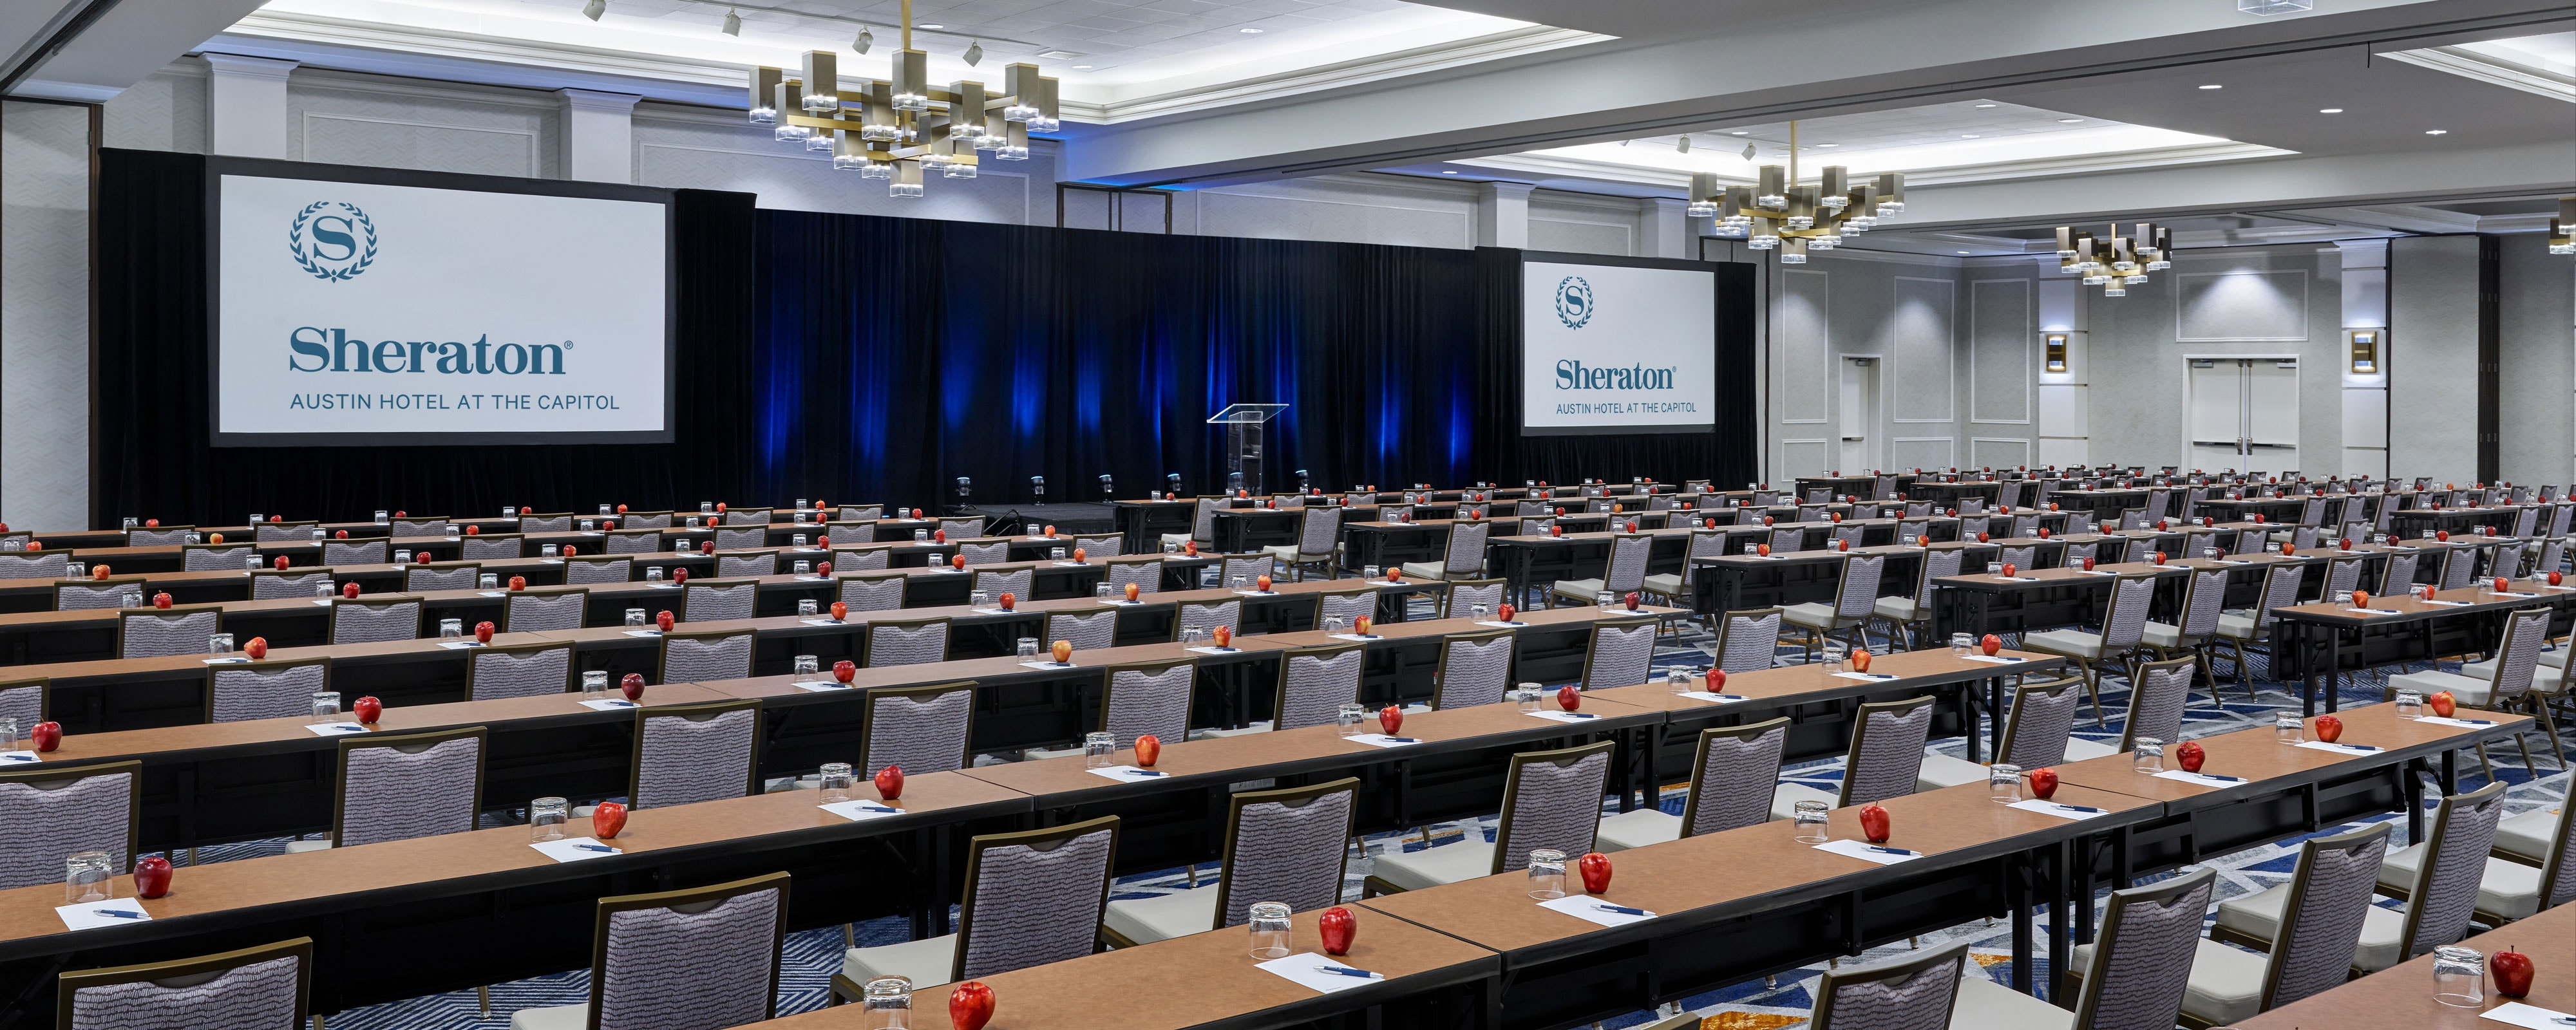 Your Meeting Your Choice at Sheraton Austin Hotel at the Capitol